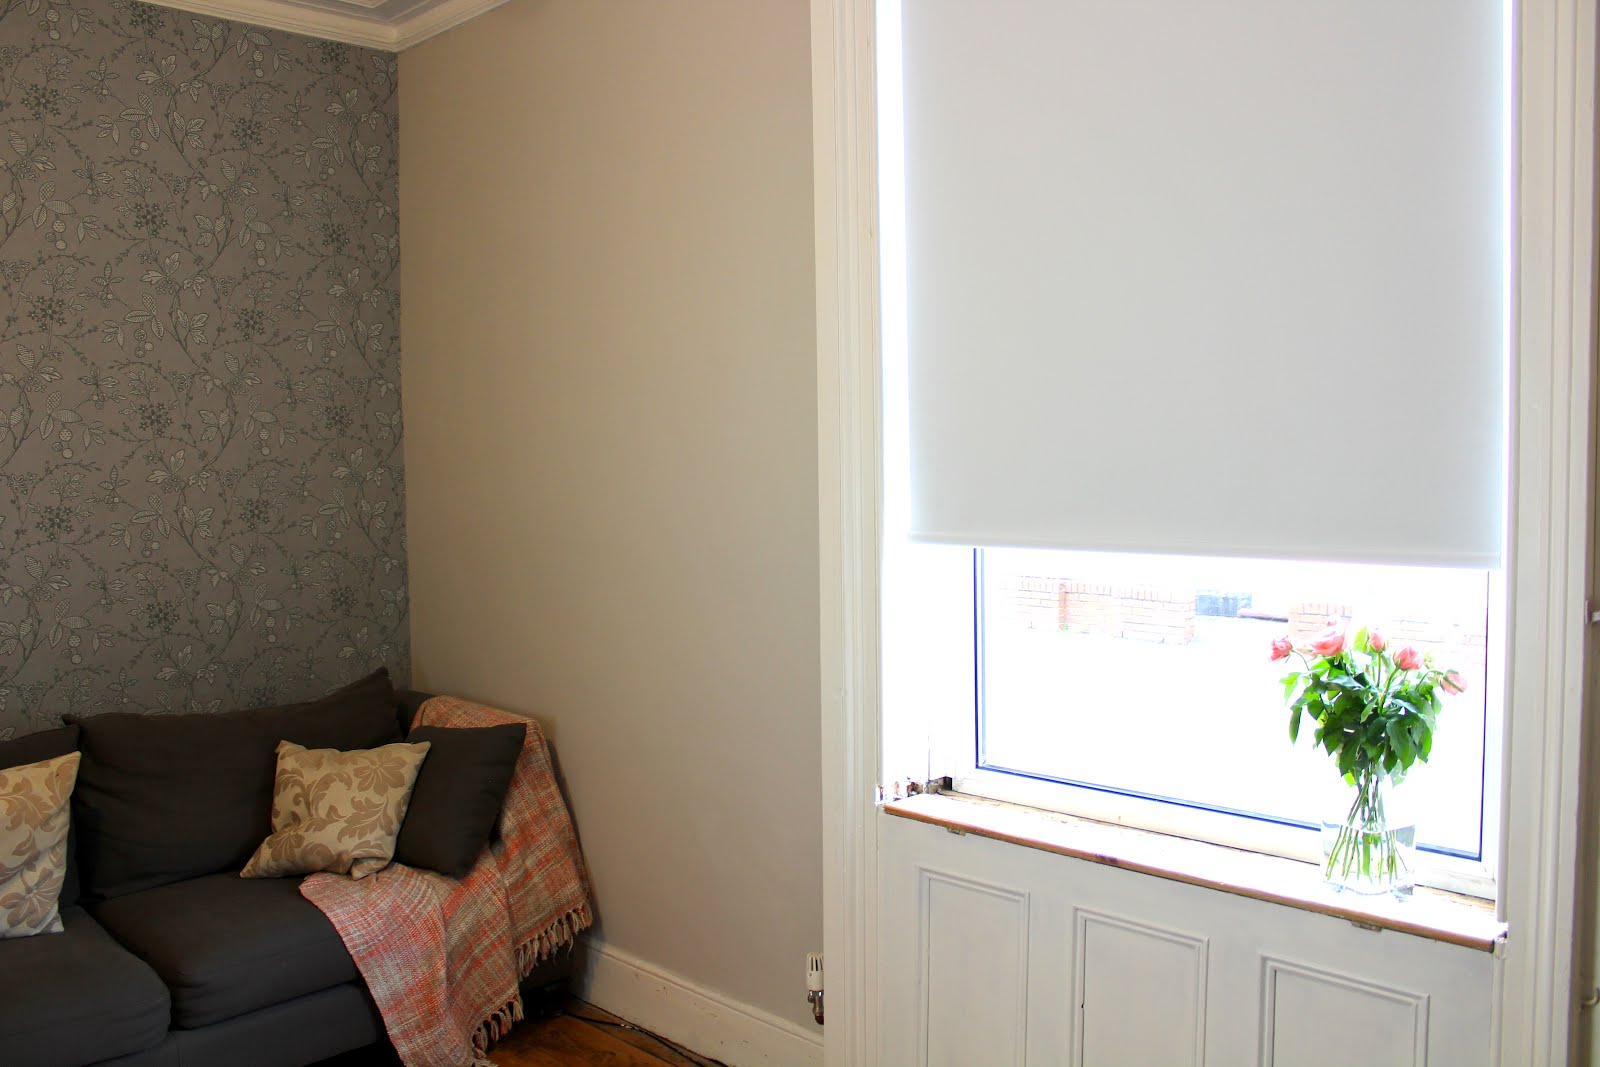 Uk home renovation interiors and diy blog for Best motorized blinds reviews